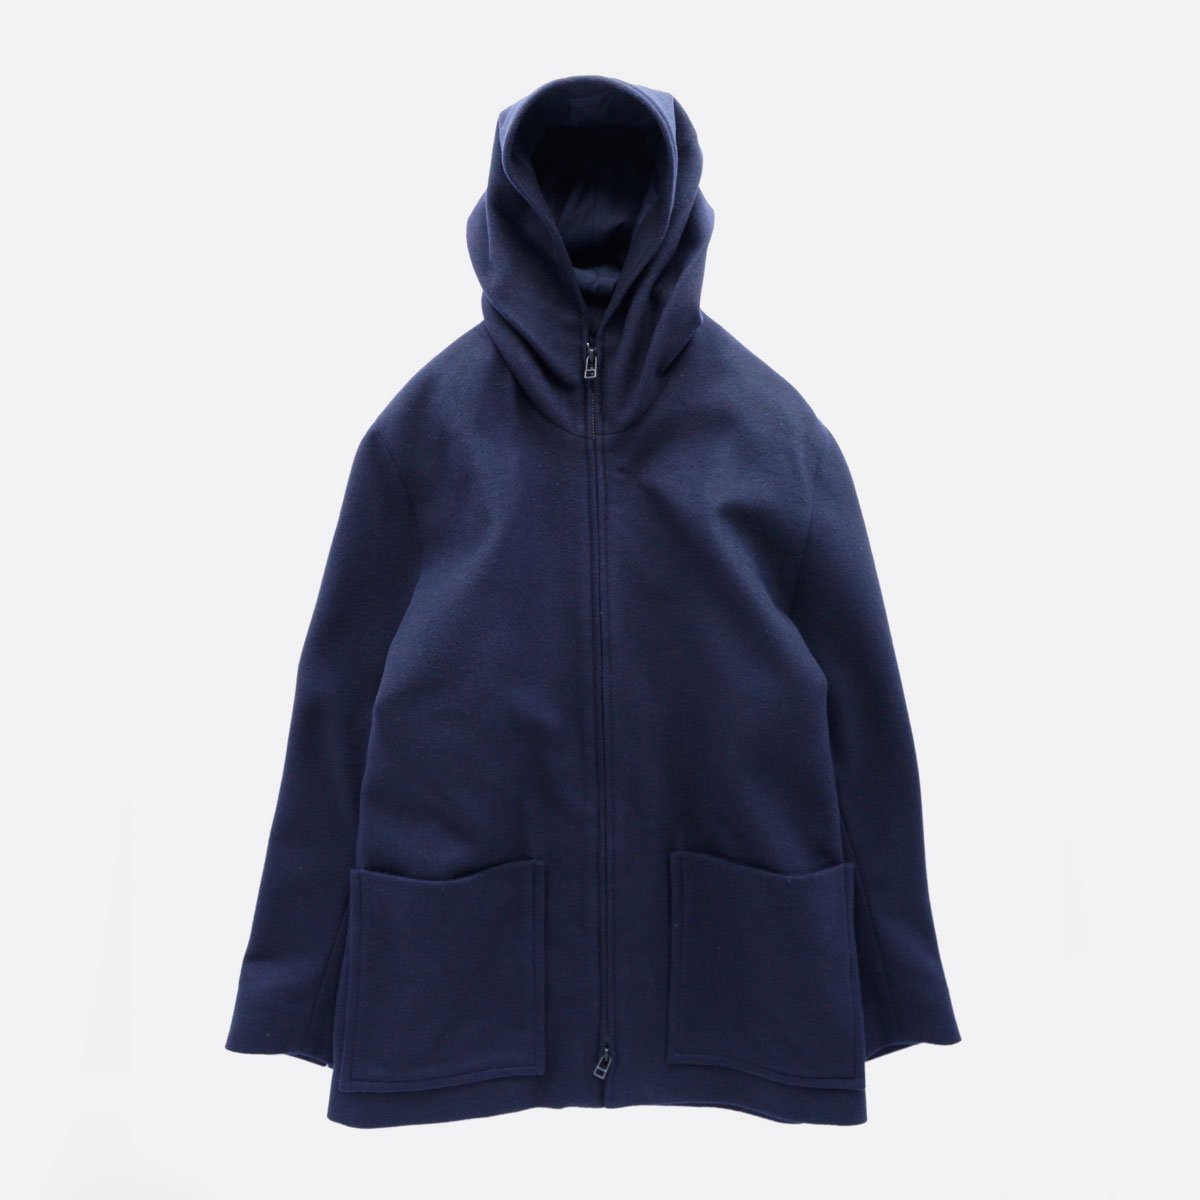 FIRMUM SUPER 100S WOOL LODEN LIKE CLOTH HOOD JACKET (NAVY)